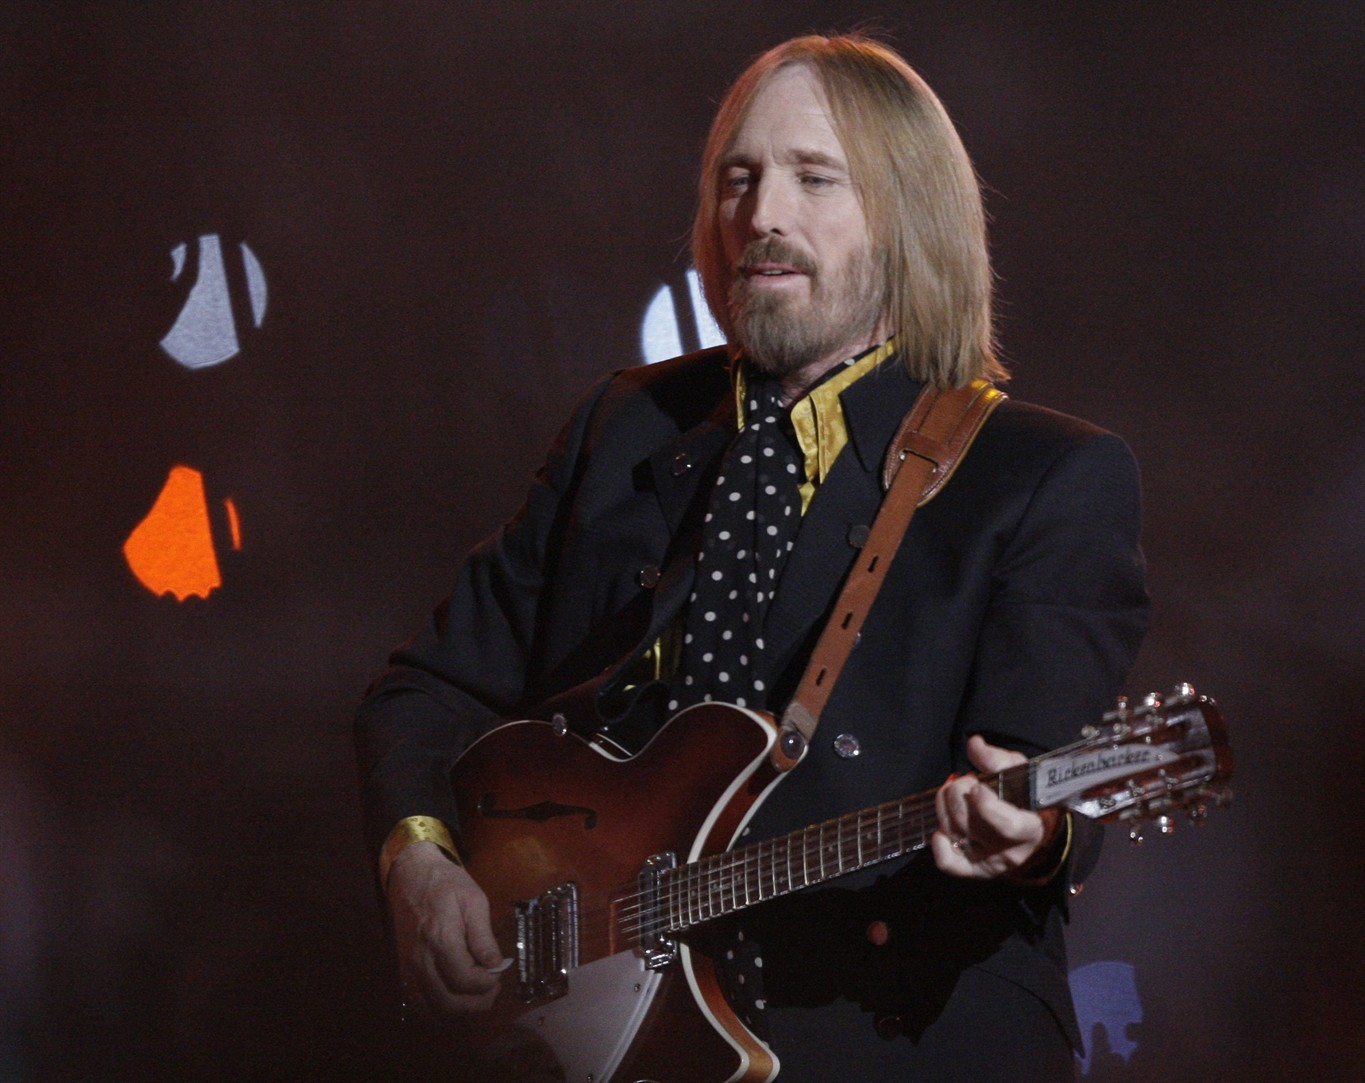 Tom Petty died from accidental drug overdose